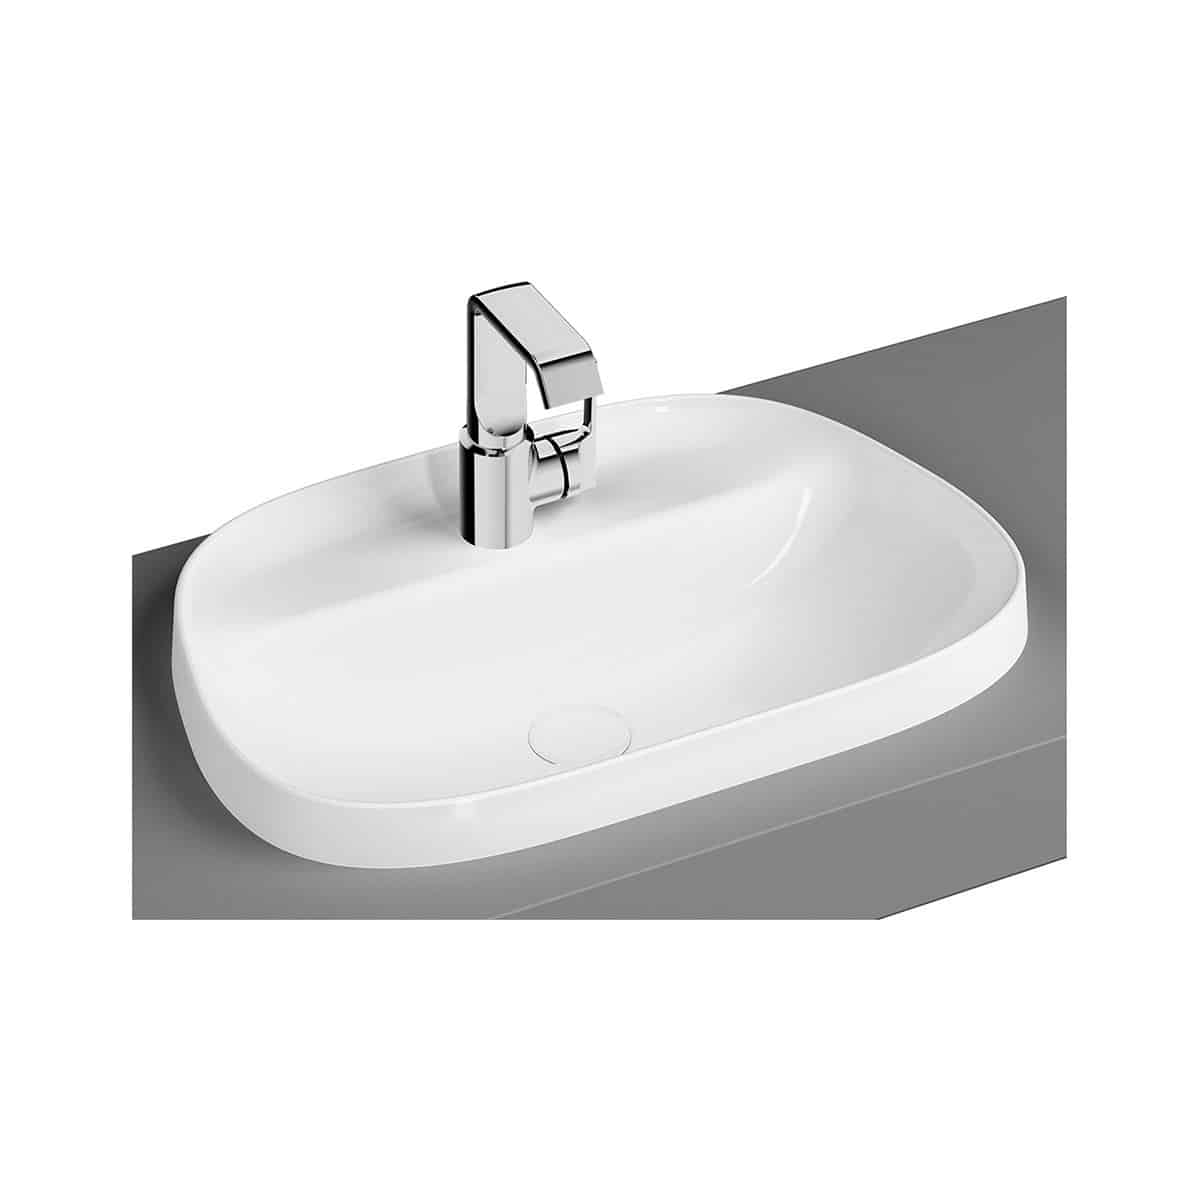 Frame Countertop Washbasin, Tv-Shaped, 57cm, One Tap Hole, Without Overflow Hole